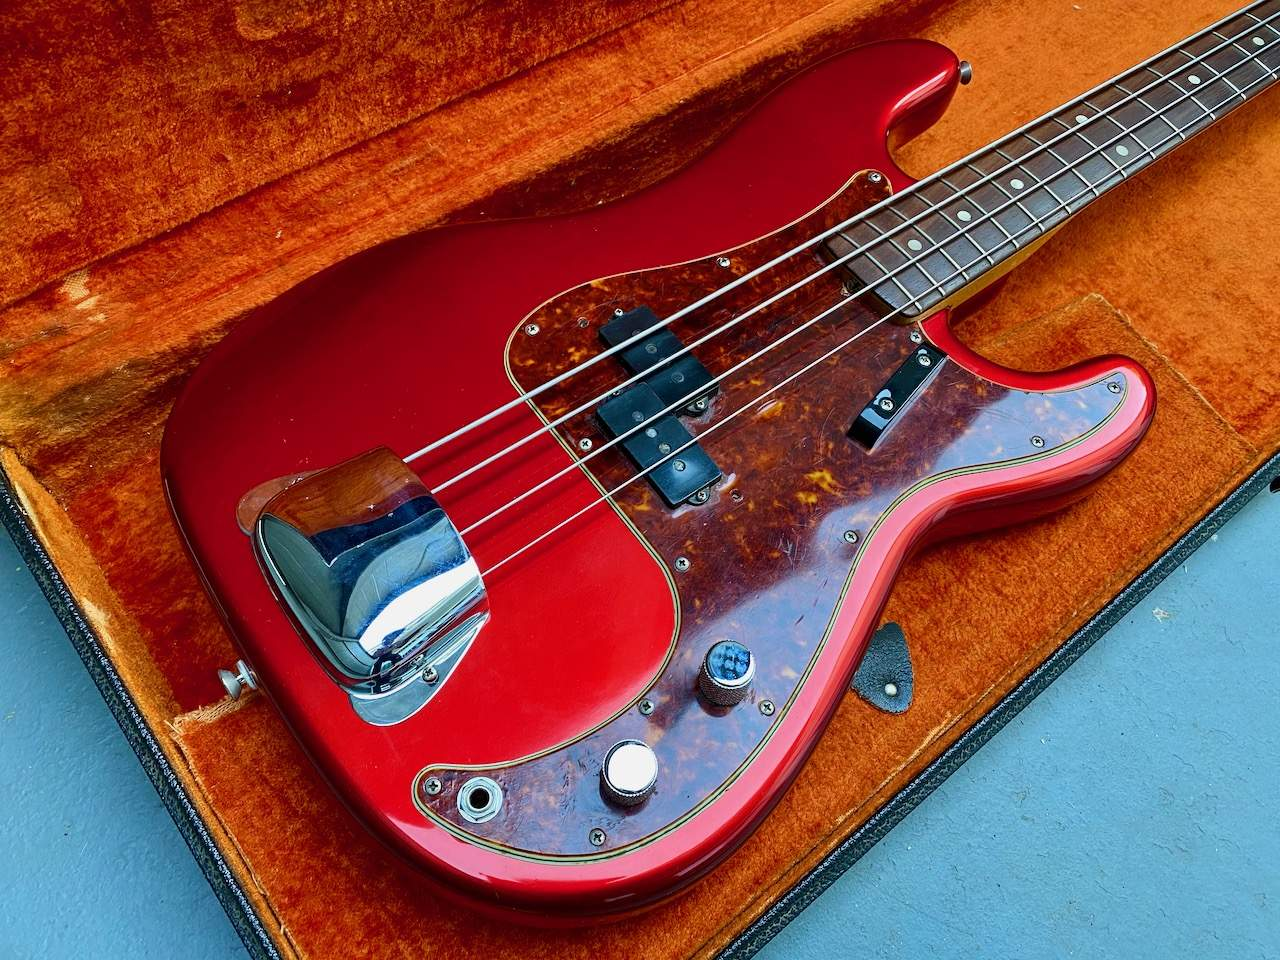 1965 Fender Precision Candy Apple Red - 43.jpeg